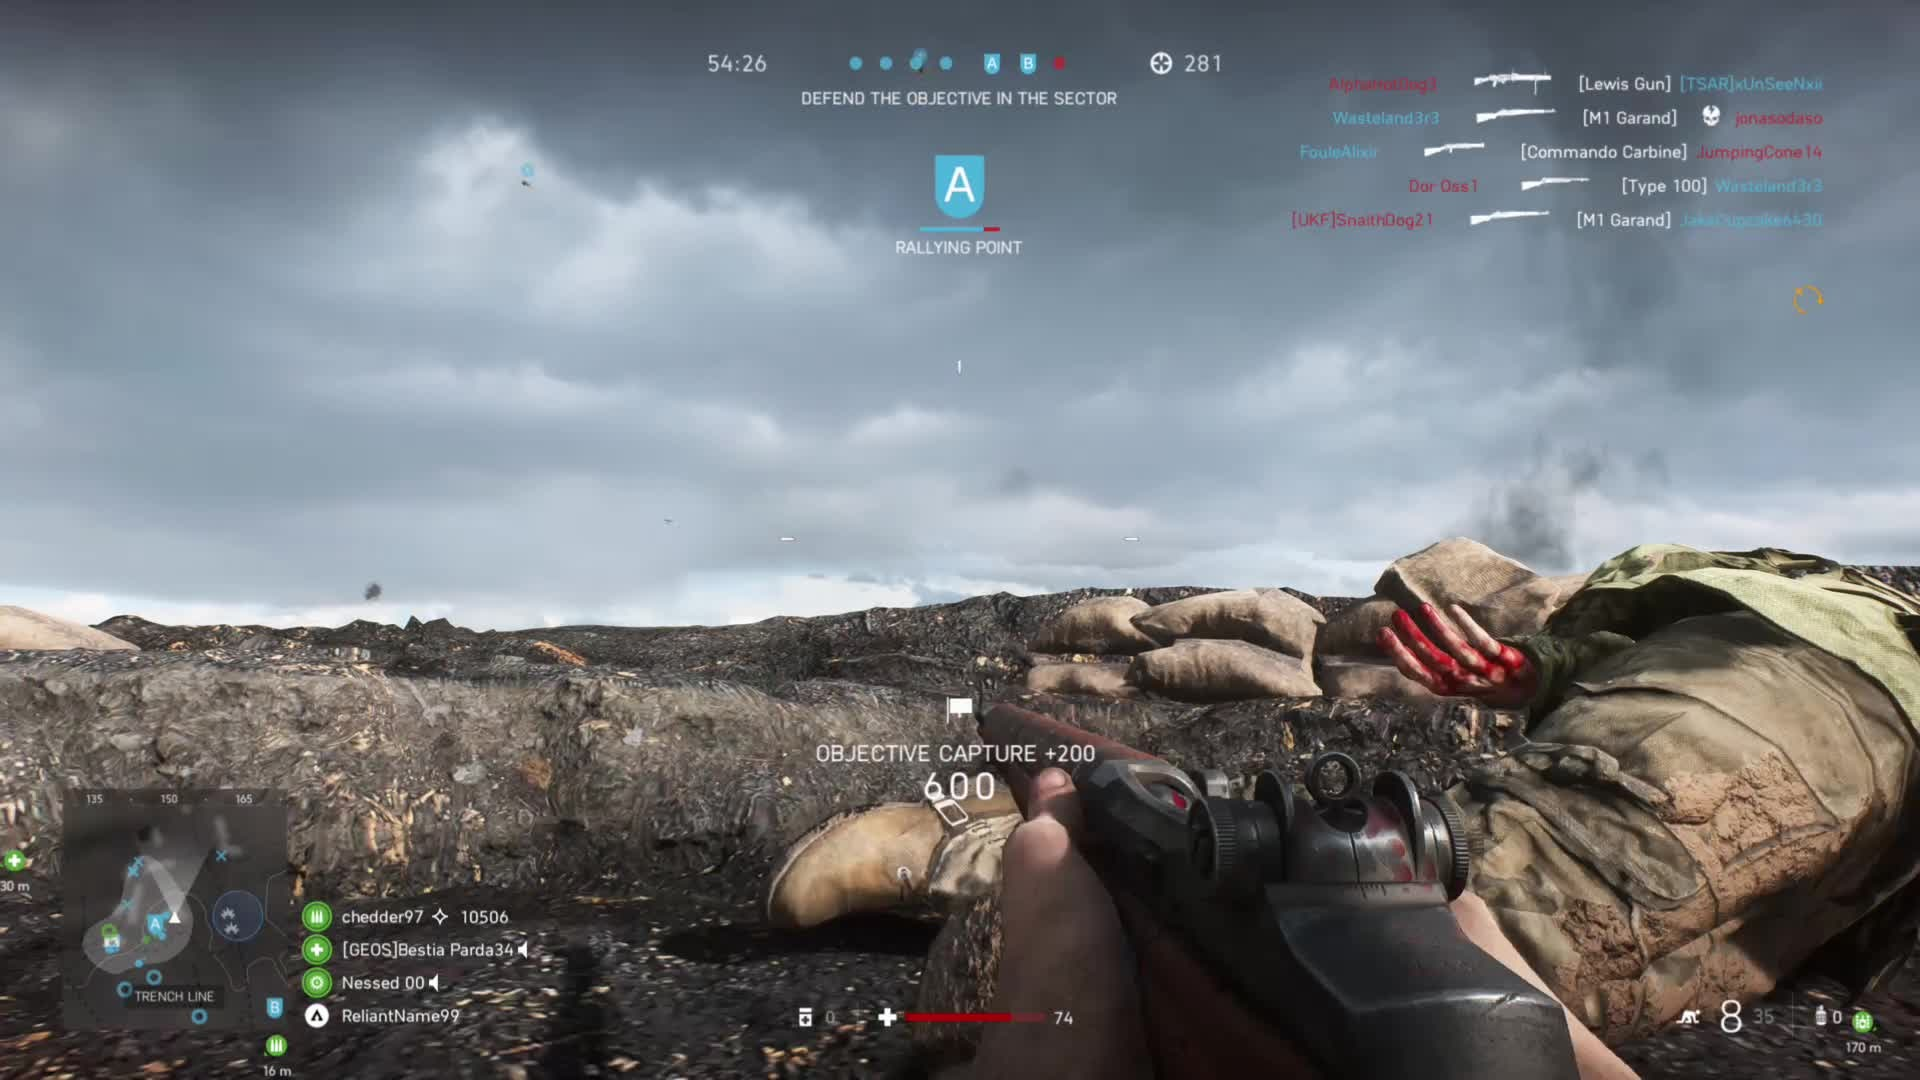 Battlefield: General - Who else thinks this gadget is OP? video cover image 0